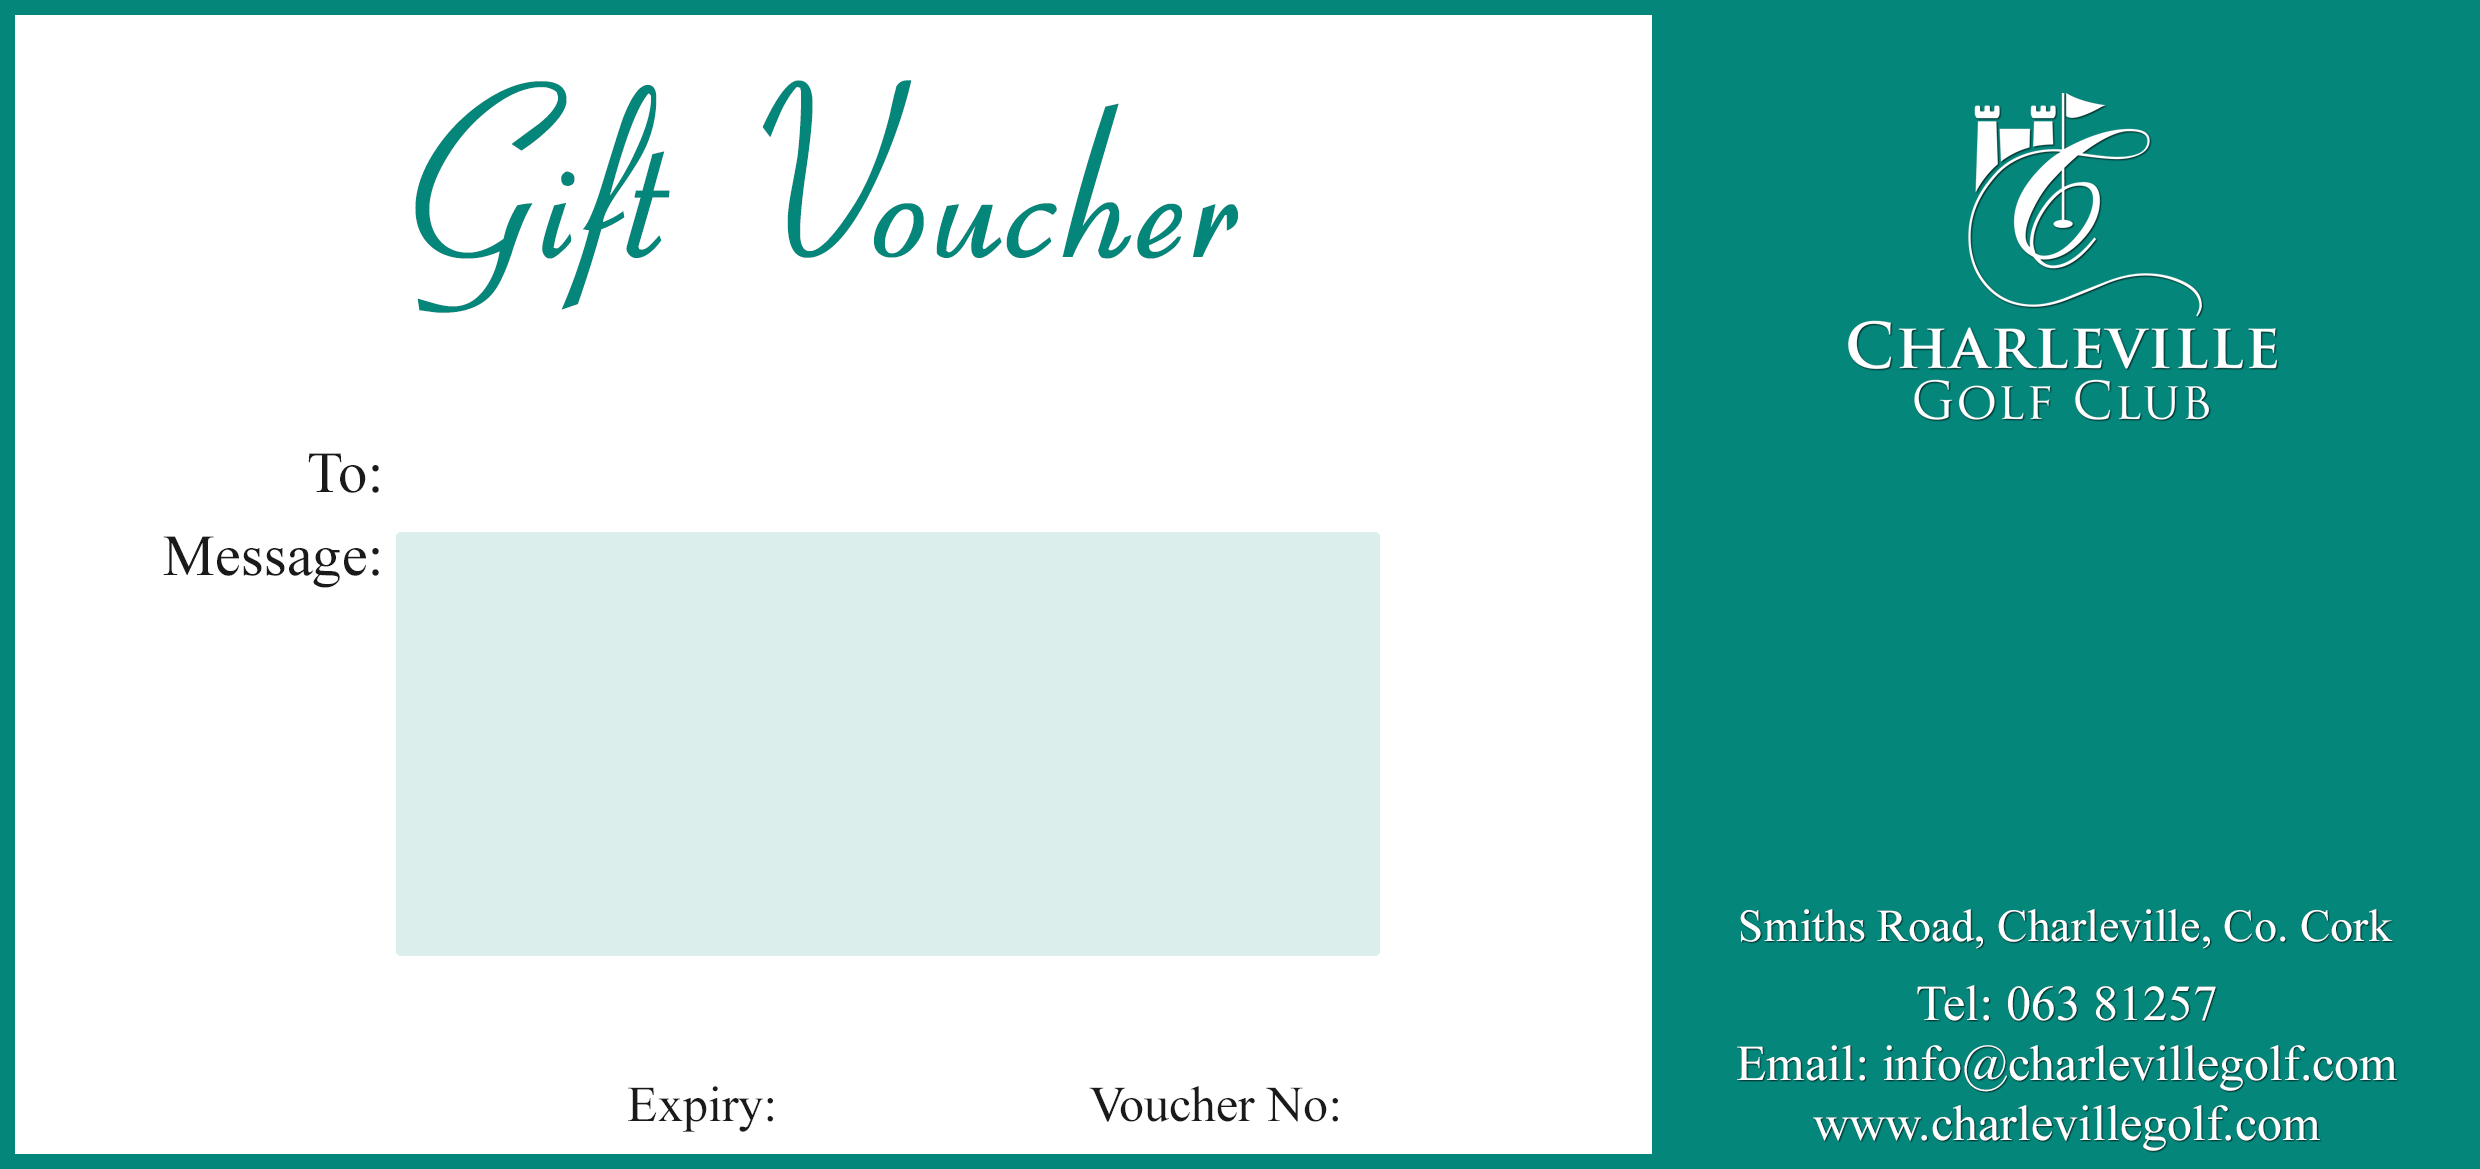 create a voucher waiter resume examples for letters job application